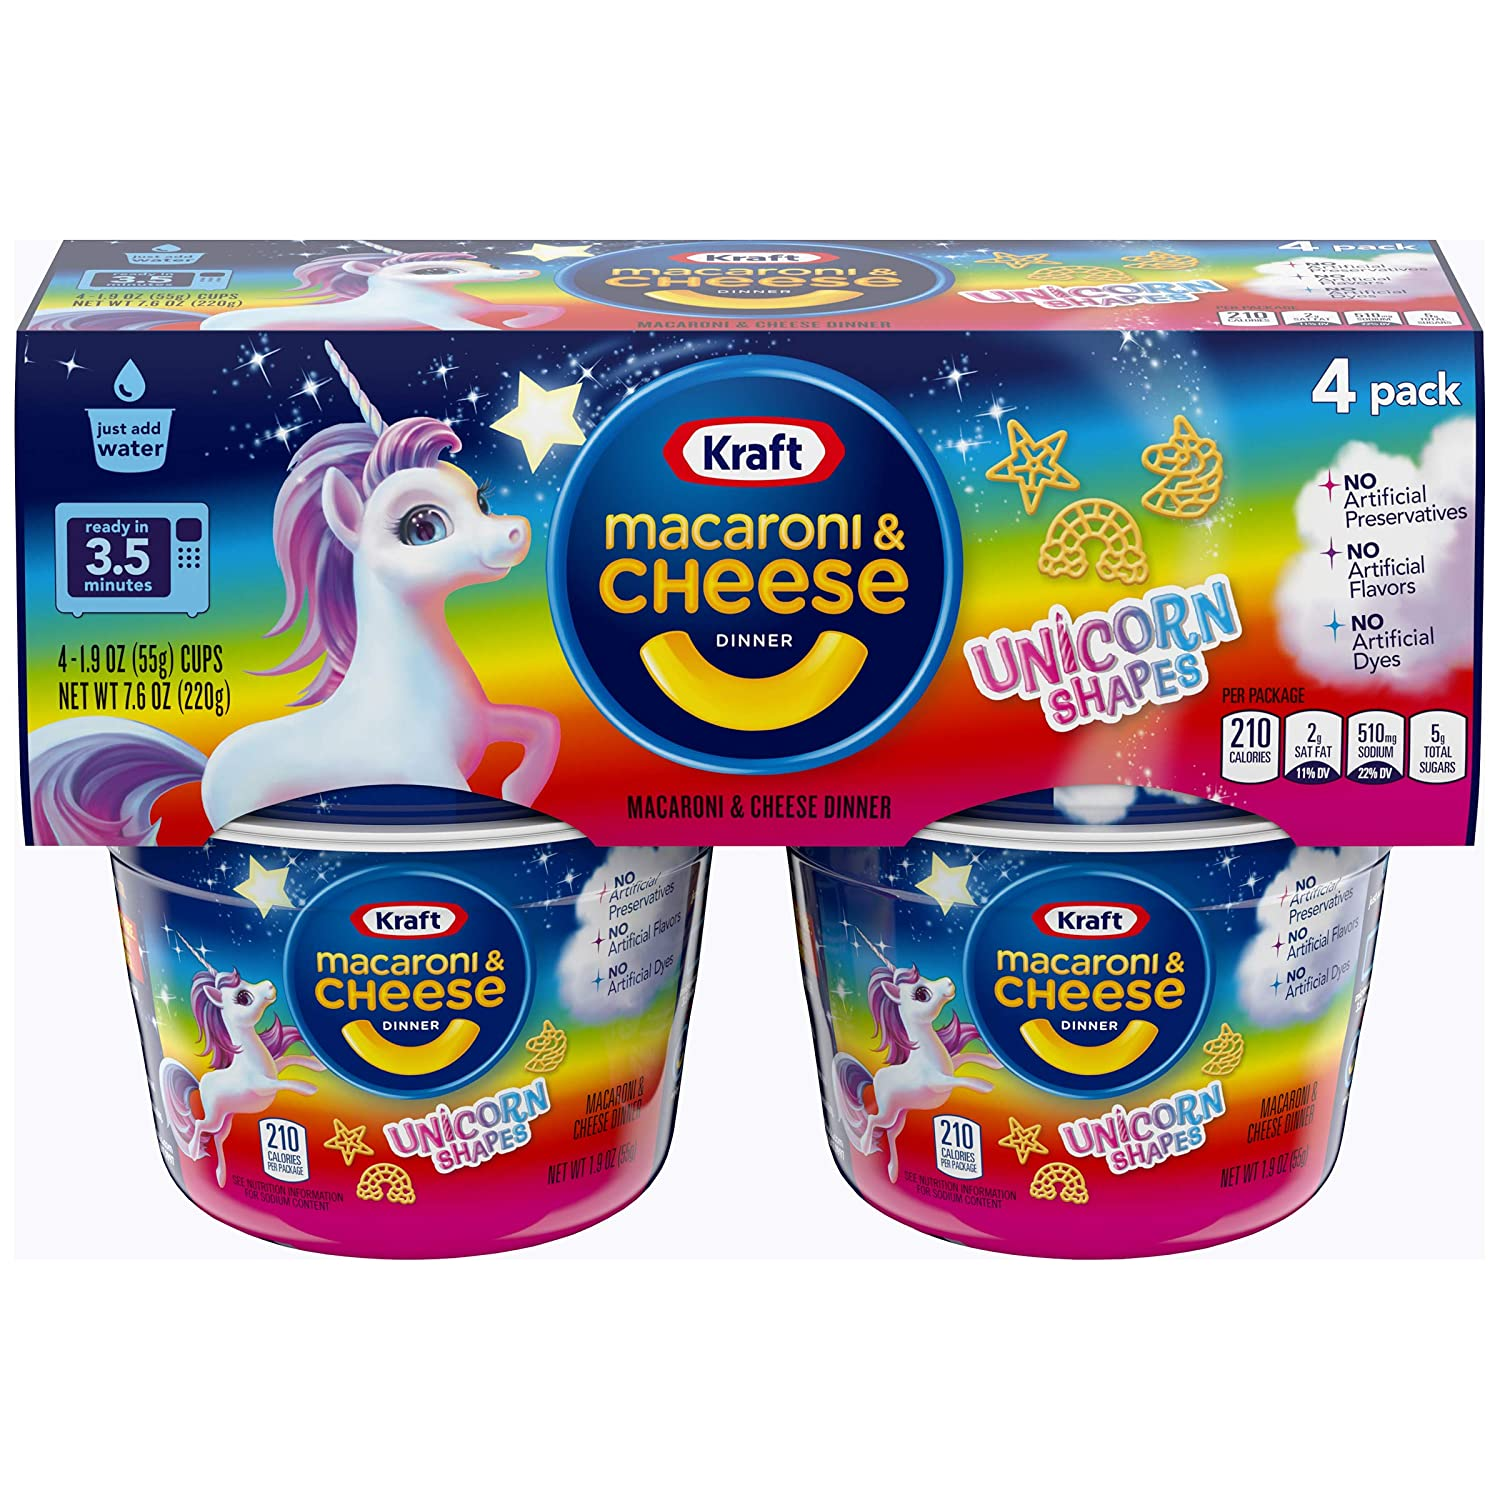 Kraft Easy Mac Unicorn Shapes Macaroni and Cheese , 4 ct - 7.6 oz Package